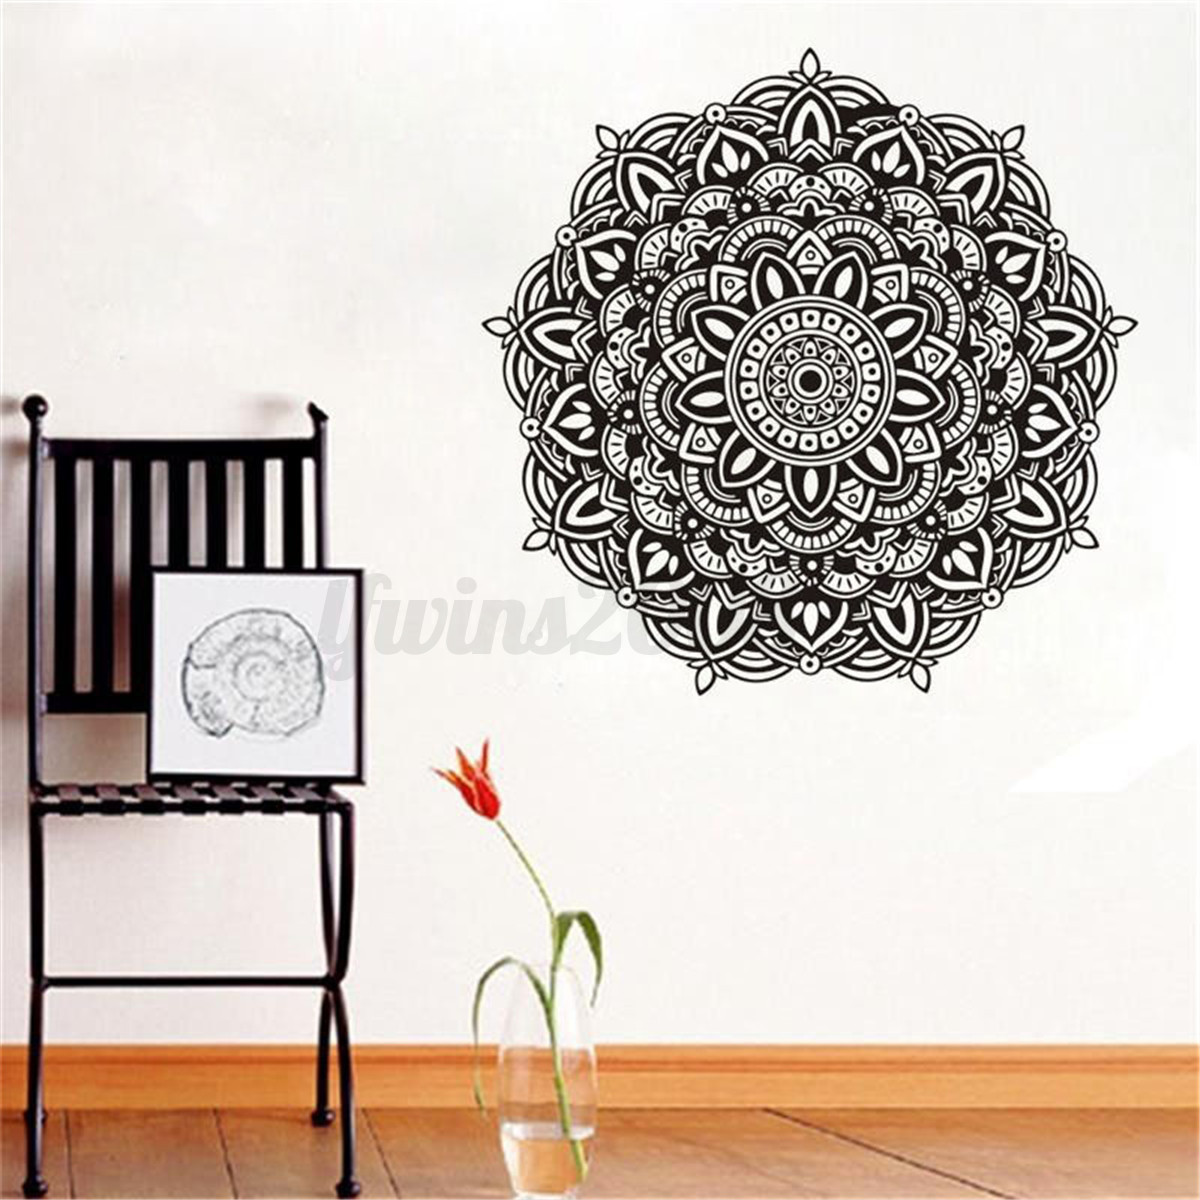 indische blumen mandala wandaufkleber wandtattoo wandsticker wohnzimmer deko eur 9 89. Black Bedroom Furniture Sets. Home Design Ideas